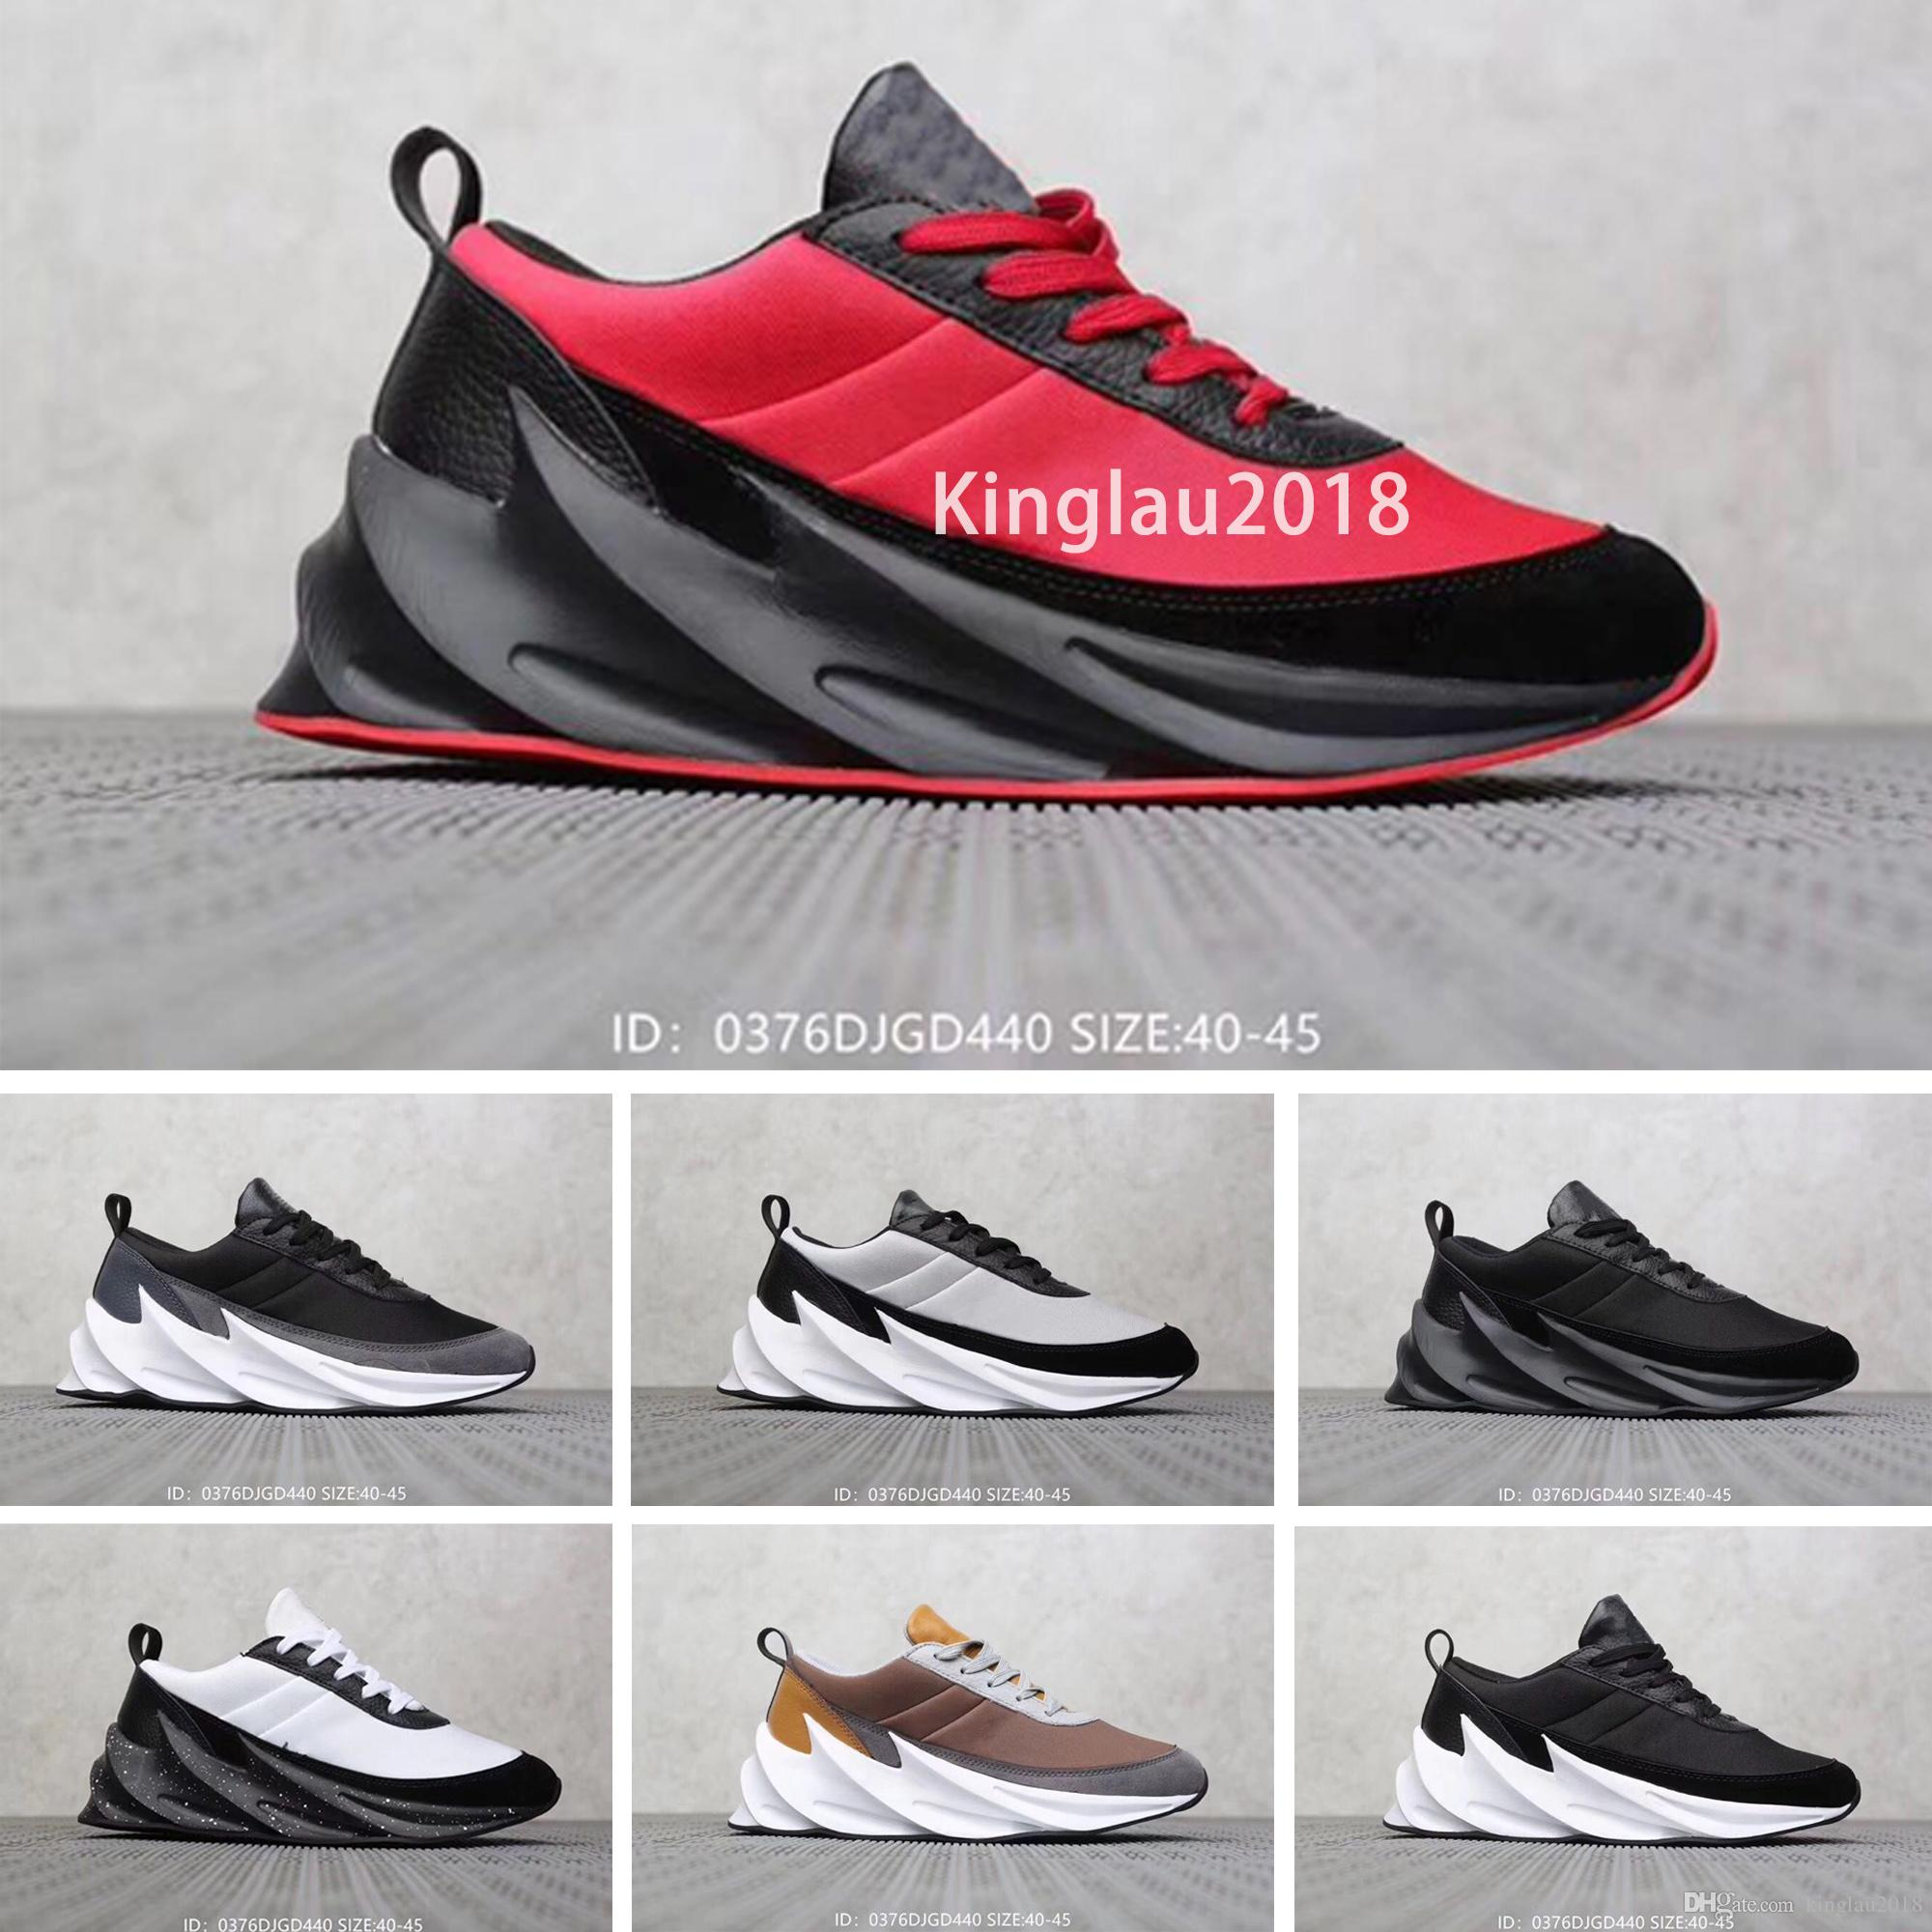 00bfd65e9f7 Luxury Designer Dad Shoes 2019 Men Casual Sharks Concept Running ...